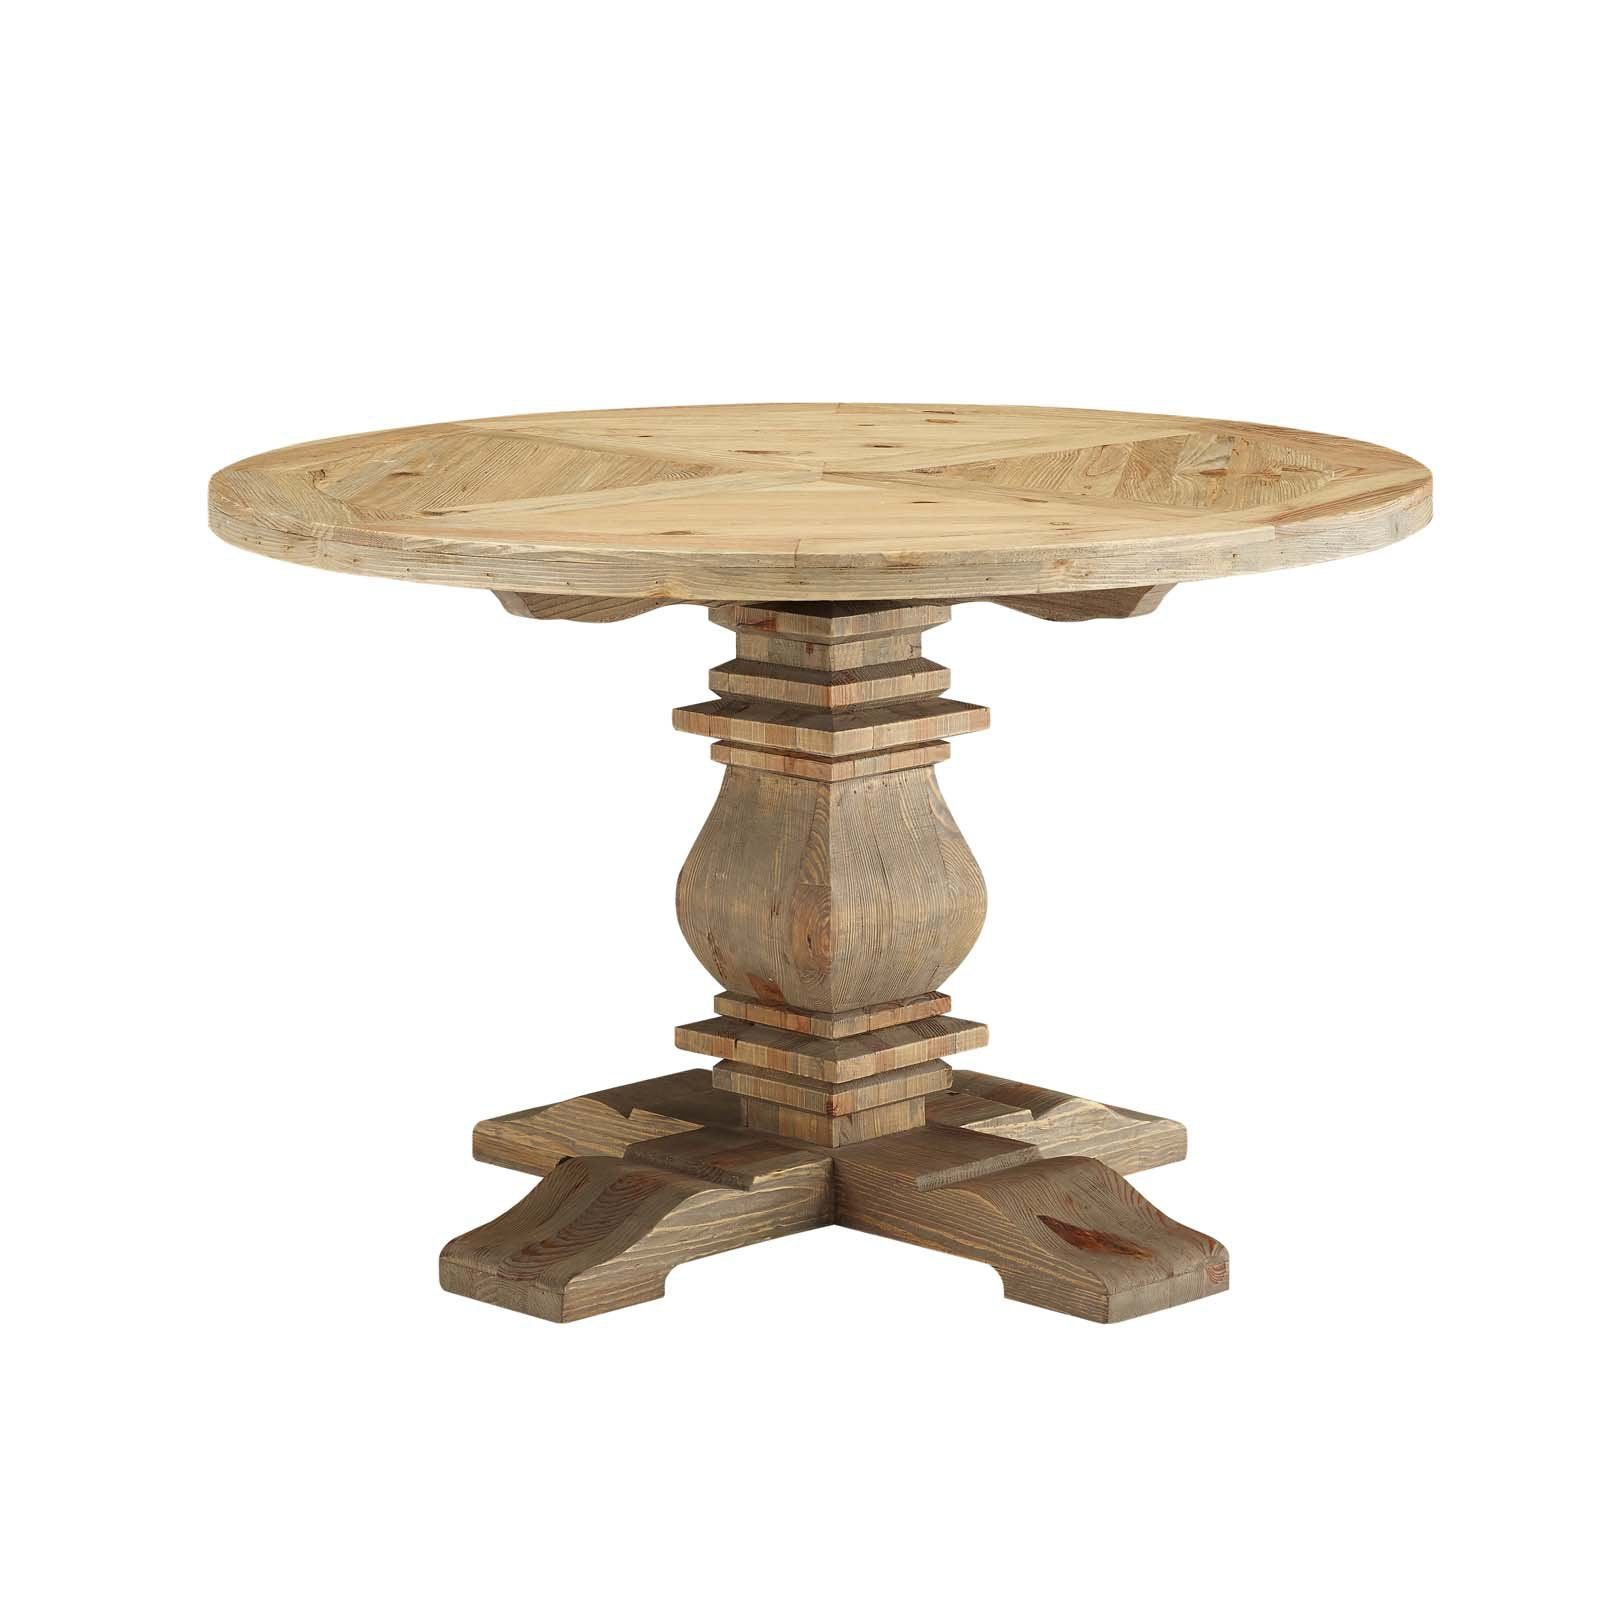 Modway Column Round Wood Dining Table Size 71 In Round Wood